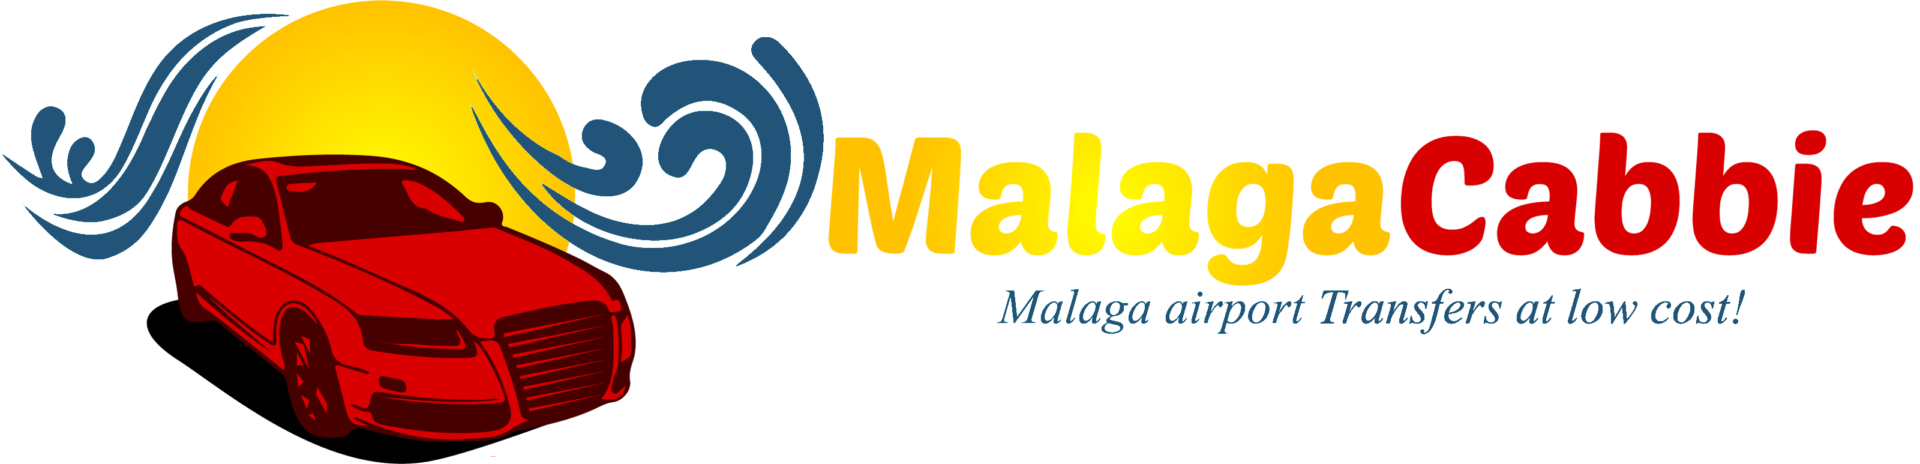 Malaga Cabbie | Malaga Cabbie Airport Transfers - Terms and Conditions